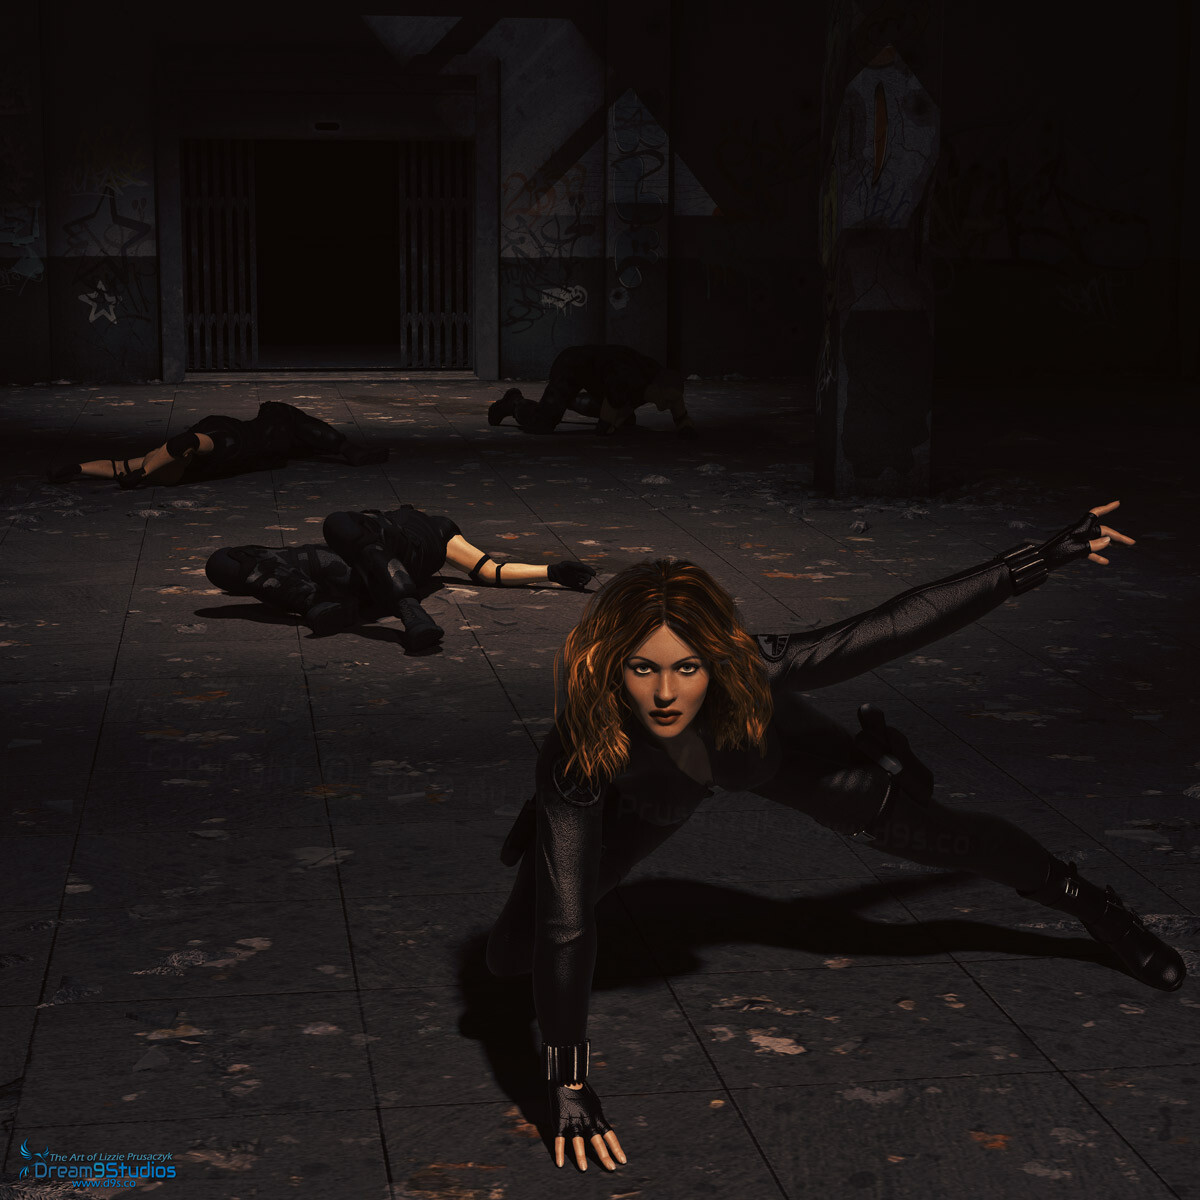 The infamous Black Widow defeats a group of Hydra henchmen in an old underground warehouse without even breaking a sweat.